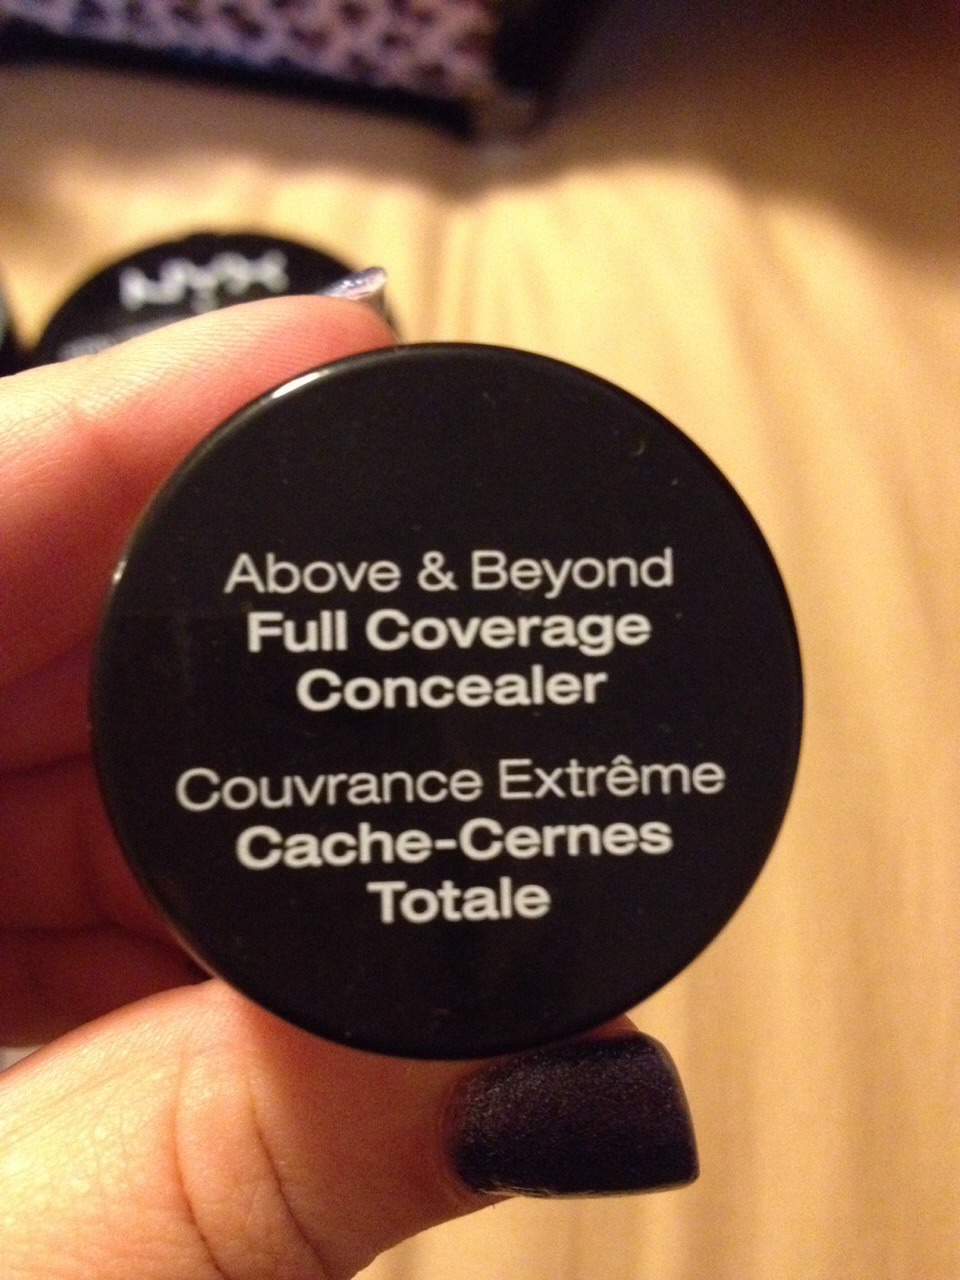 This full coverage concealer covers everything dark circles spots and unwanted bumps $4.99 love it little goes a long ways!!!